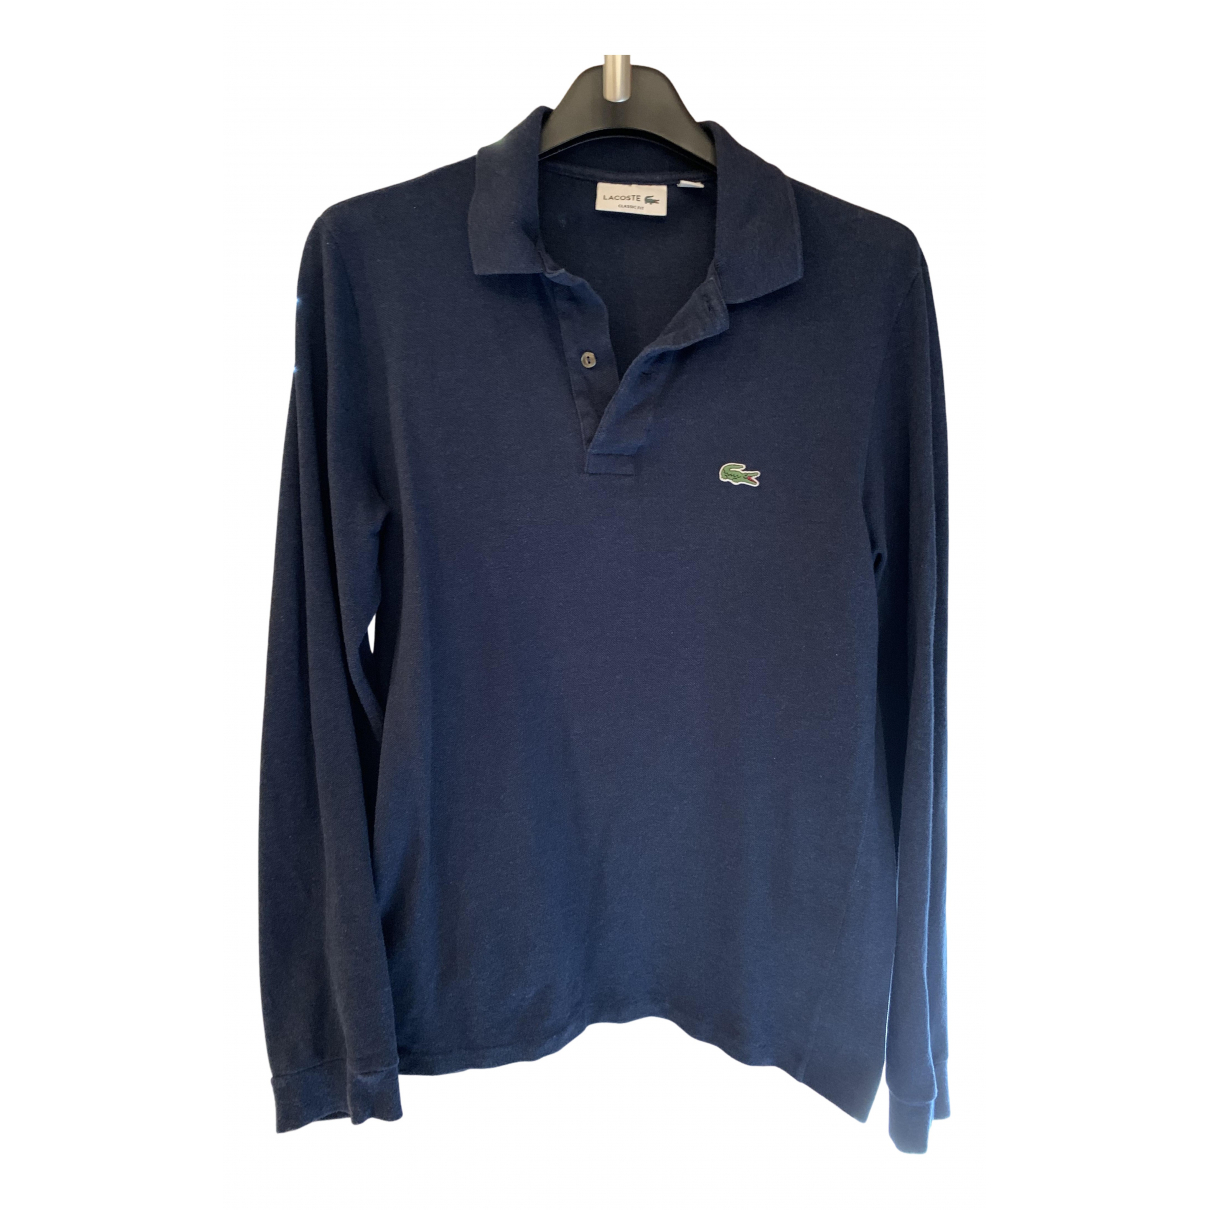 Lacoste N Blue Cotton Polo shirts for Men 3 0 - 6